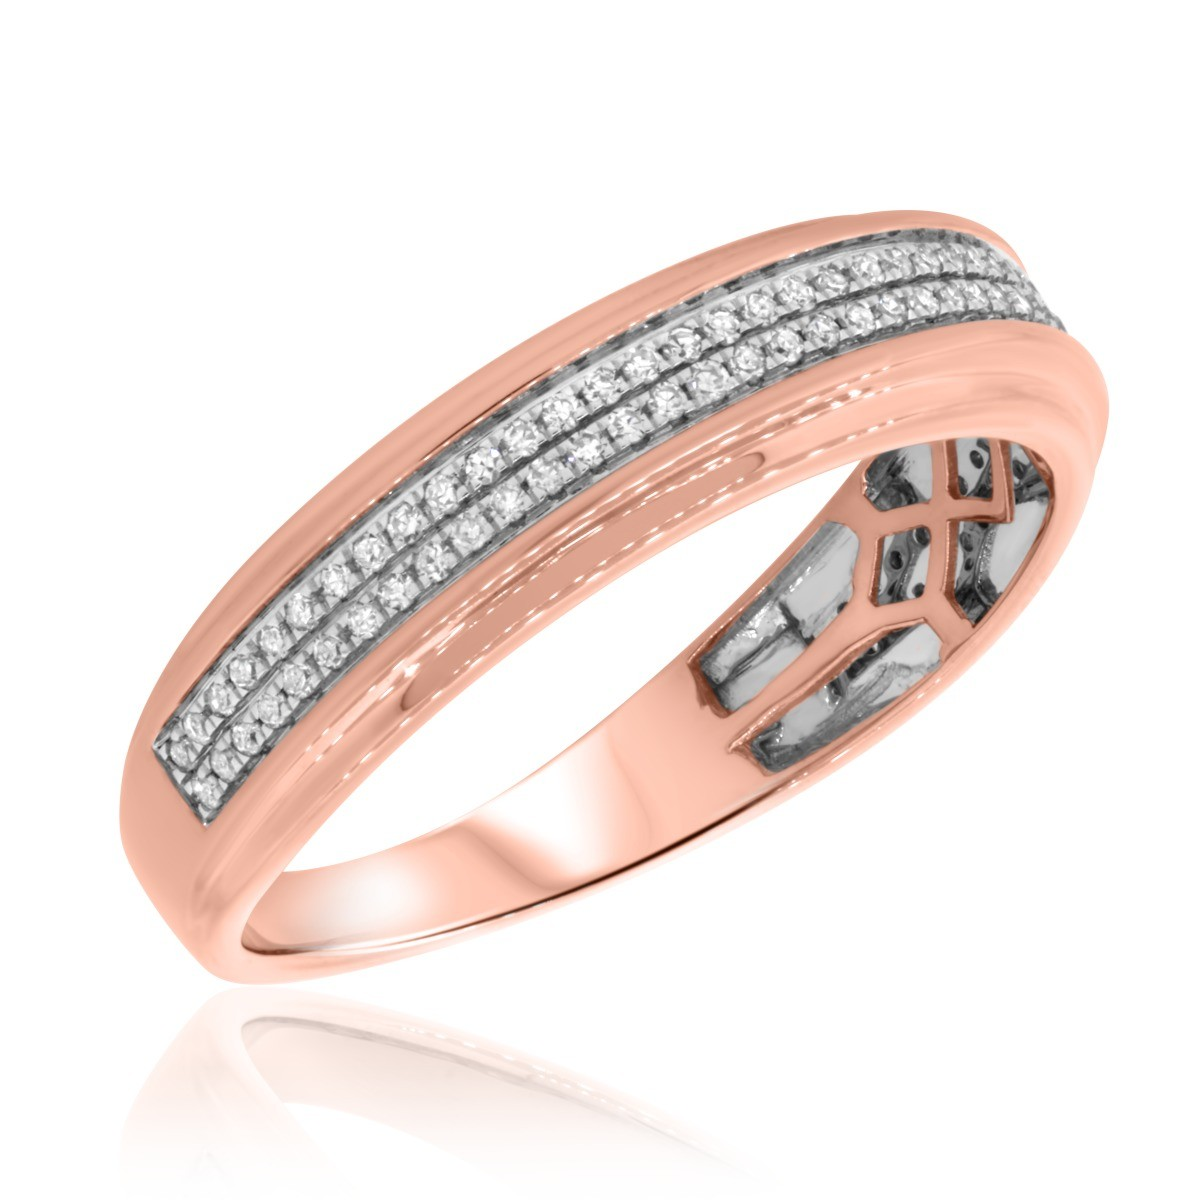 1/3 Carat T.W. Diamond Mens Wedding Band  10K Rose Gold